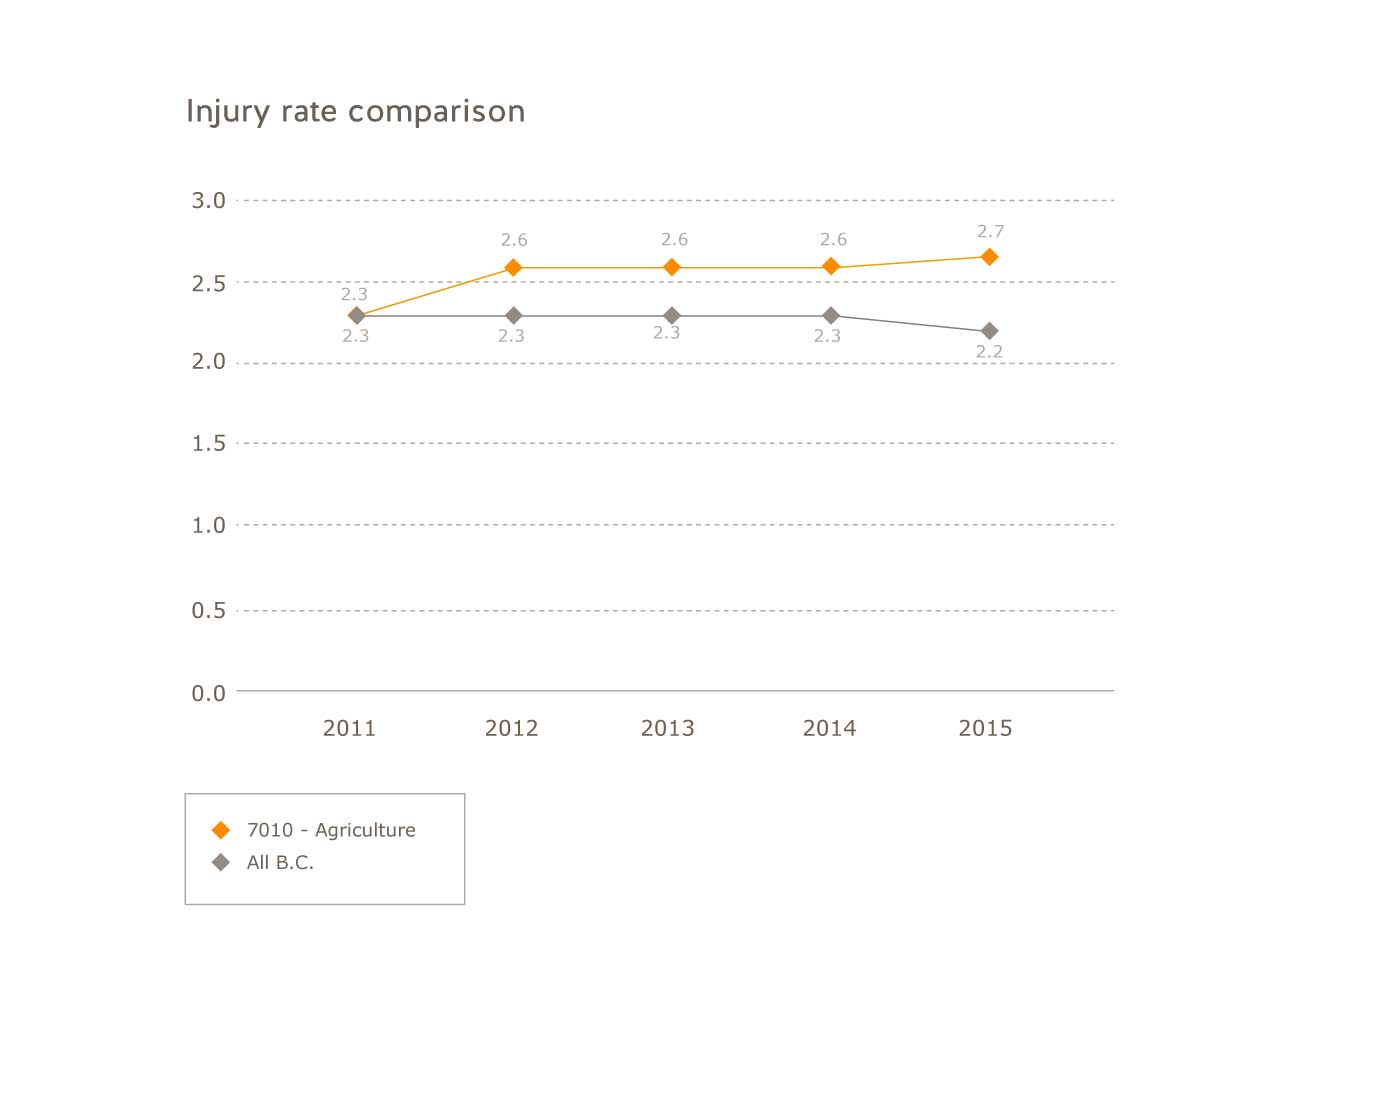 Injury rate comparison for the years 2011 to 2015: 2011: agriculture sector=2.3, all B.C.=2.3; 2012: agriculture sector=2.6, all B.C.=2.3; 2013: agriculture sector=2.6, all B.C.=2.3; 2014: agriculture sector=2.6, all B.C.=2.3; 2015: agriculture sector=2.7, all B.C.=2.2